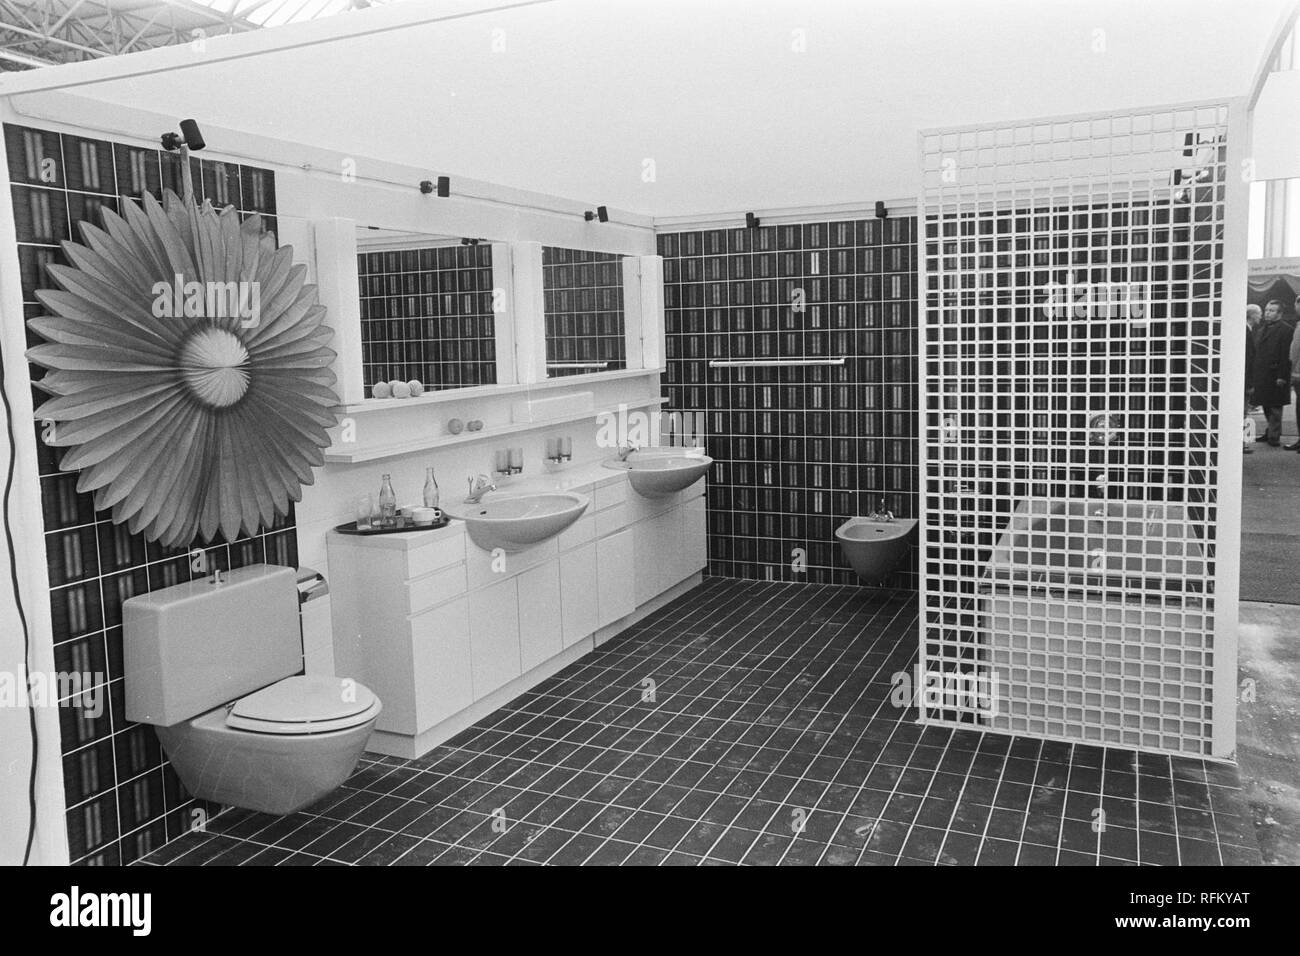 S&k Badkamer 4654 Stock Photos 4654 Stock Images Alamy